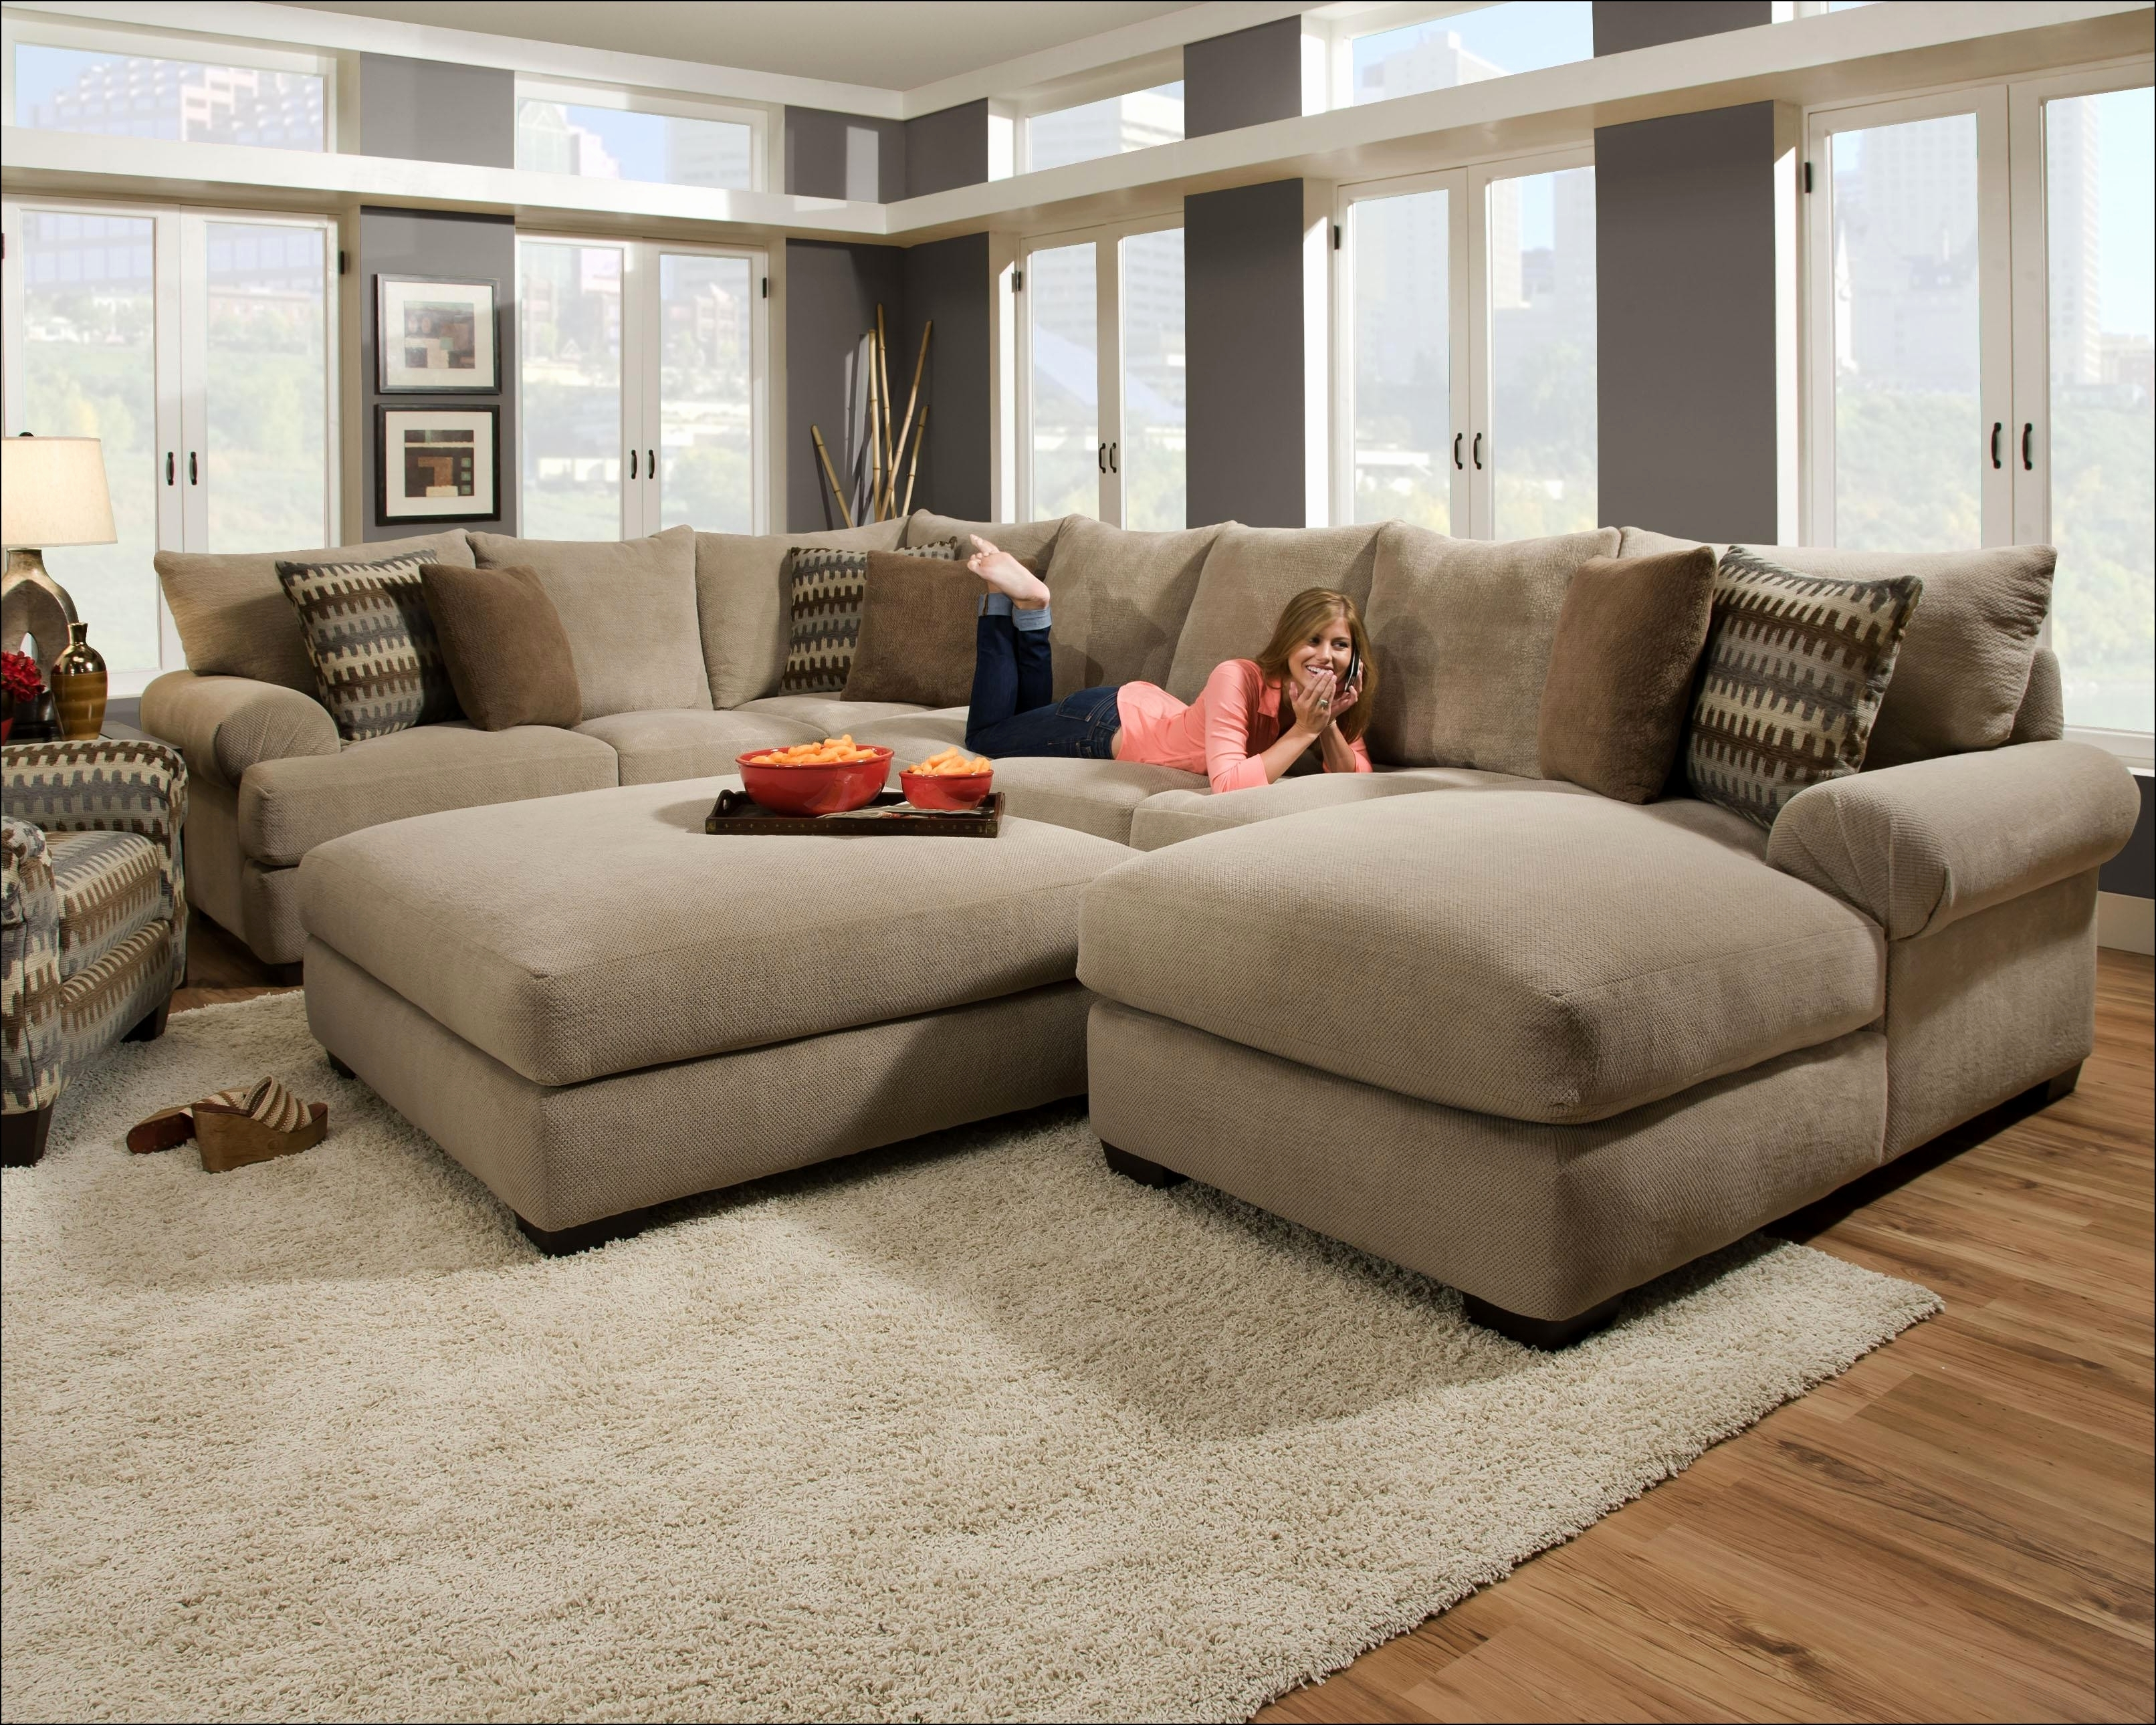 Huge Sofas Intended For Current Delightful Long Sofas Couches Snapshots – Seatersofa (View 6 of 15)